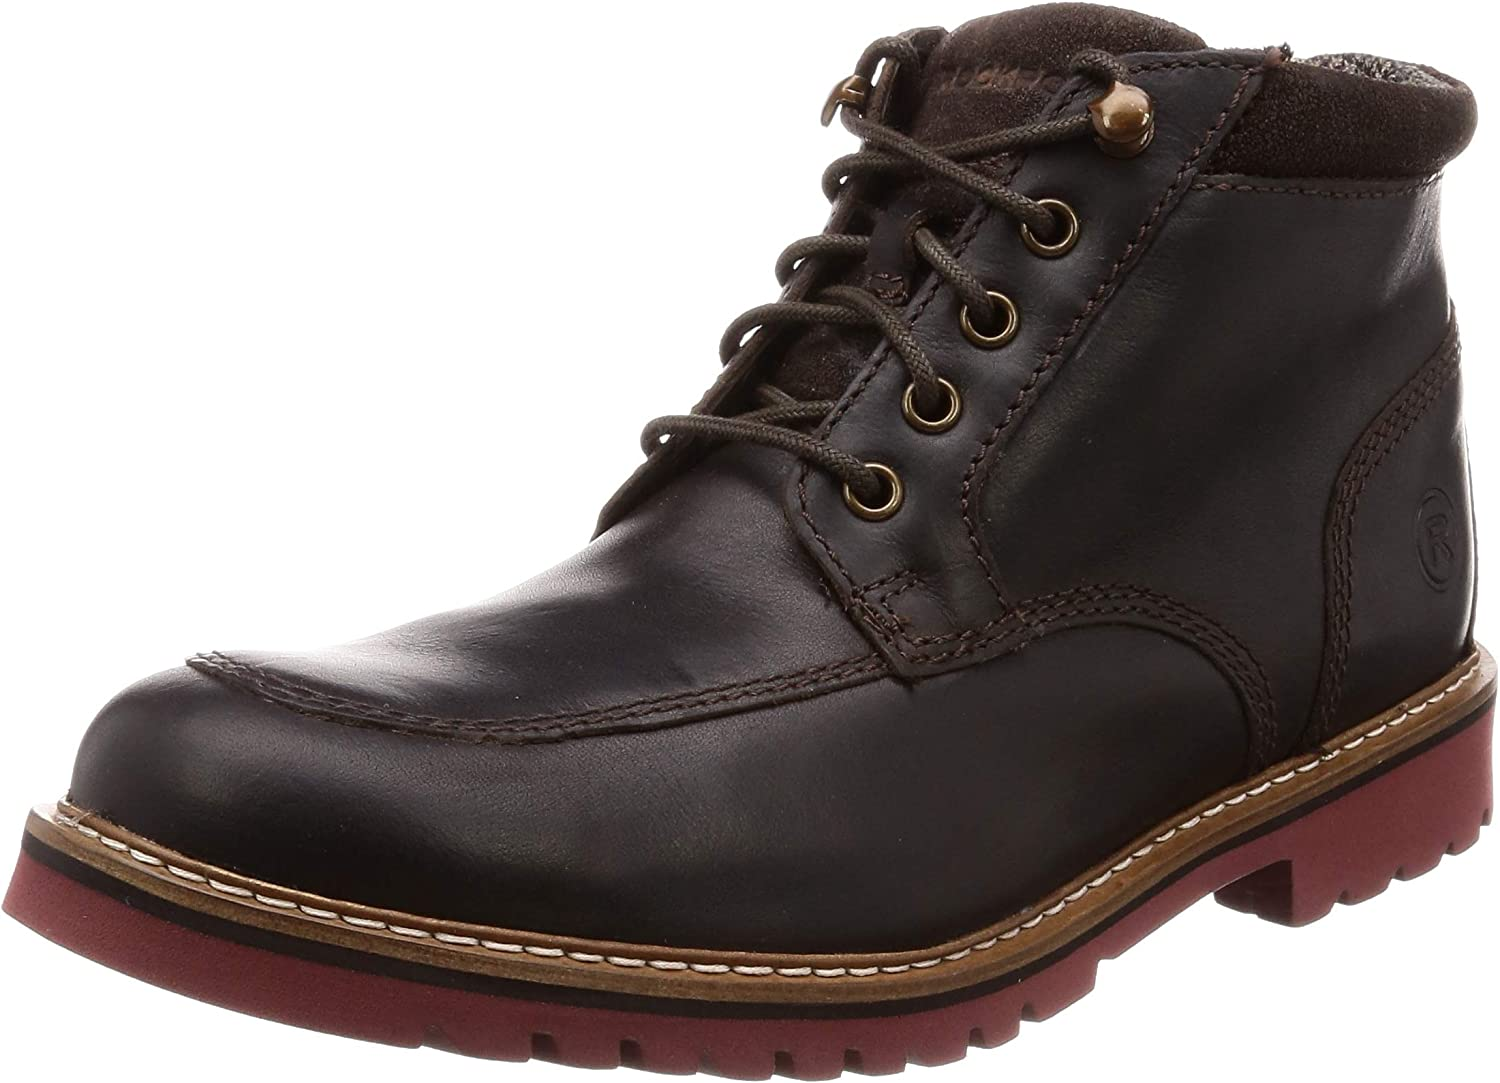 TALLA 40.5 EU. Rockport Marshall Rugged Mock Toe Boot, Botas Clasicas para Hombre